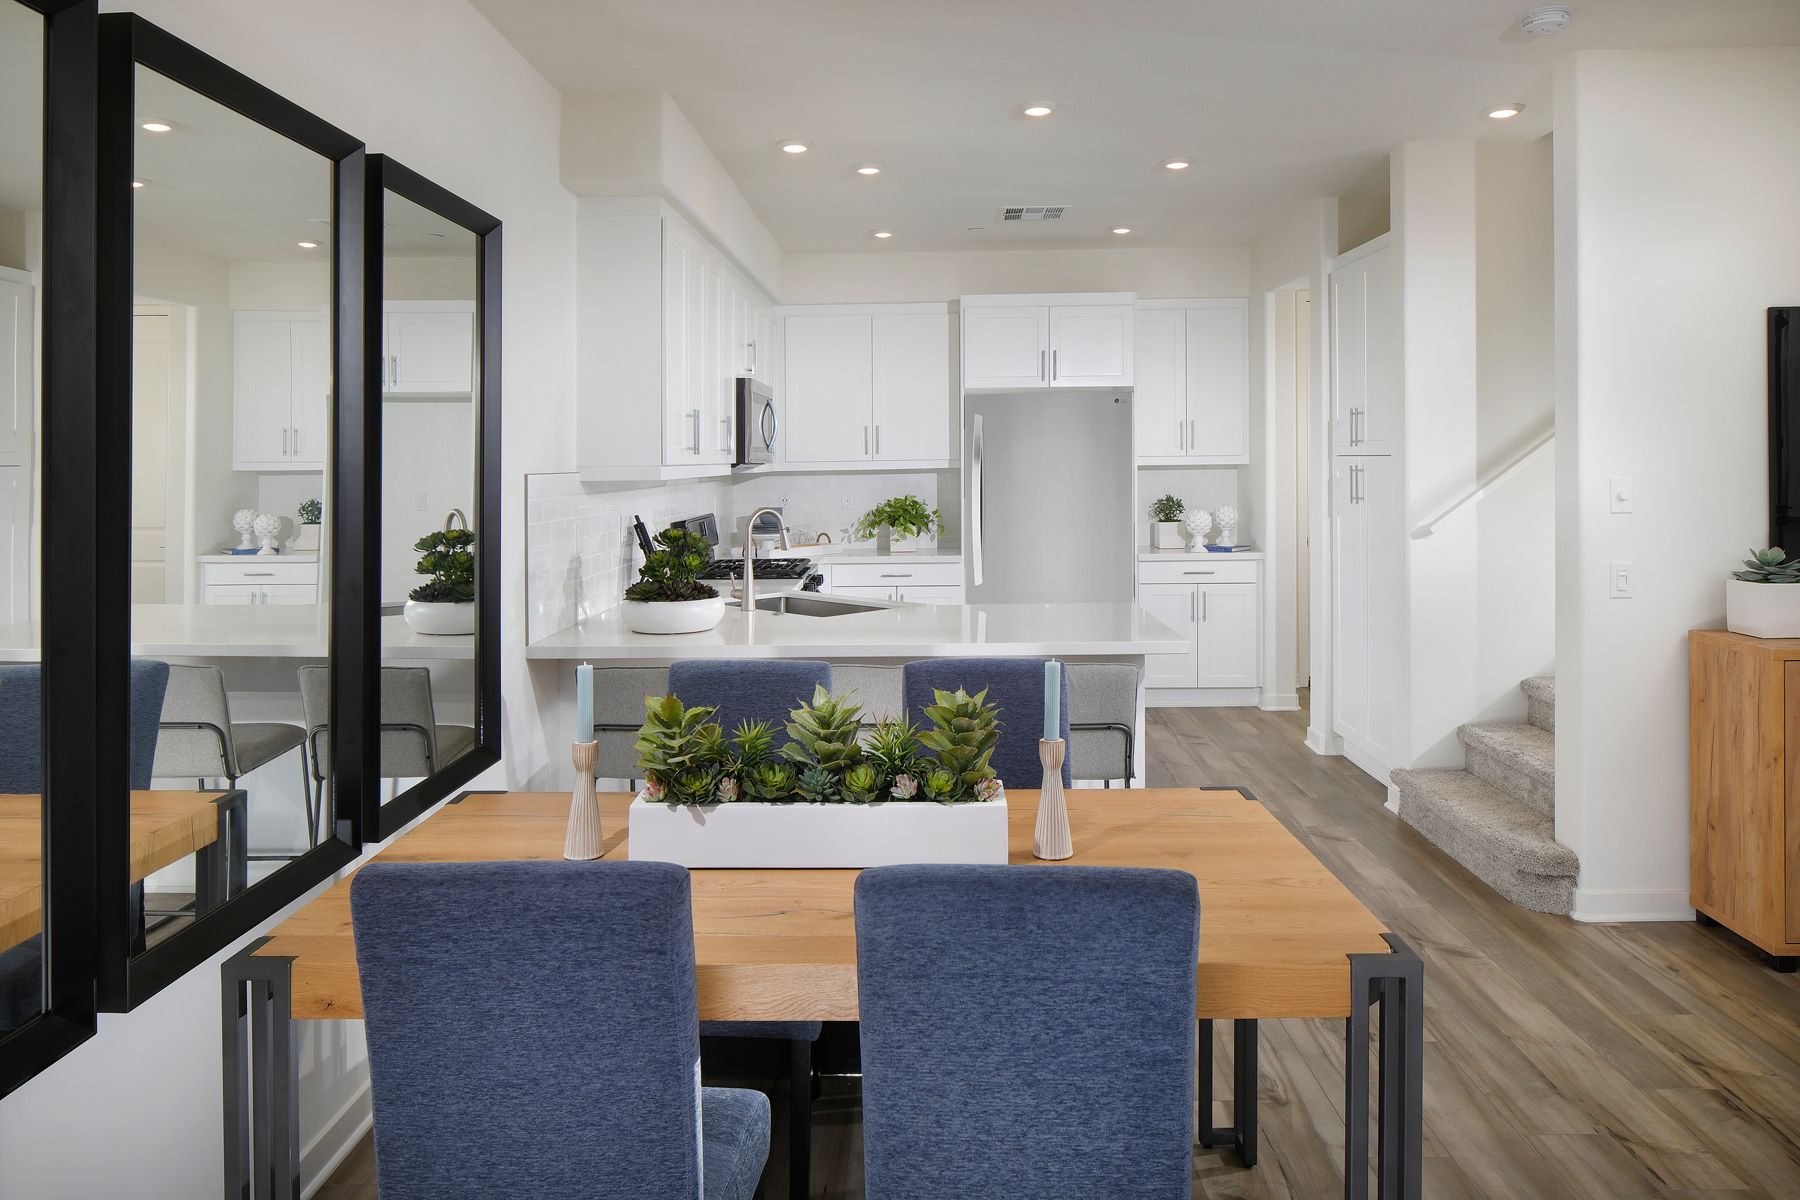 Kitchen featured in the Plan 1 By Century Communities in Los Angeles, CA